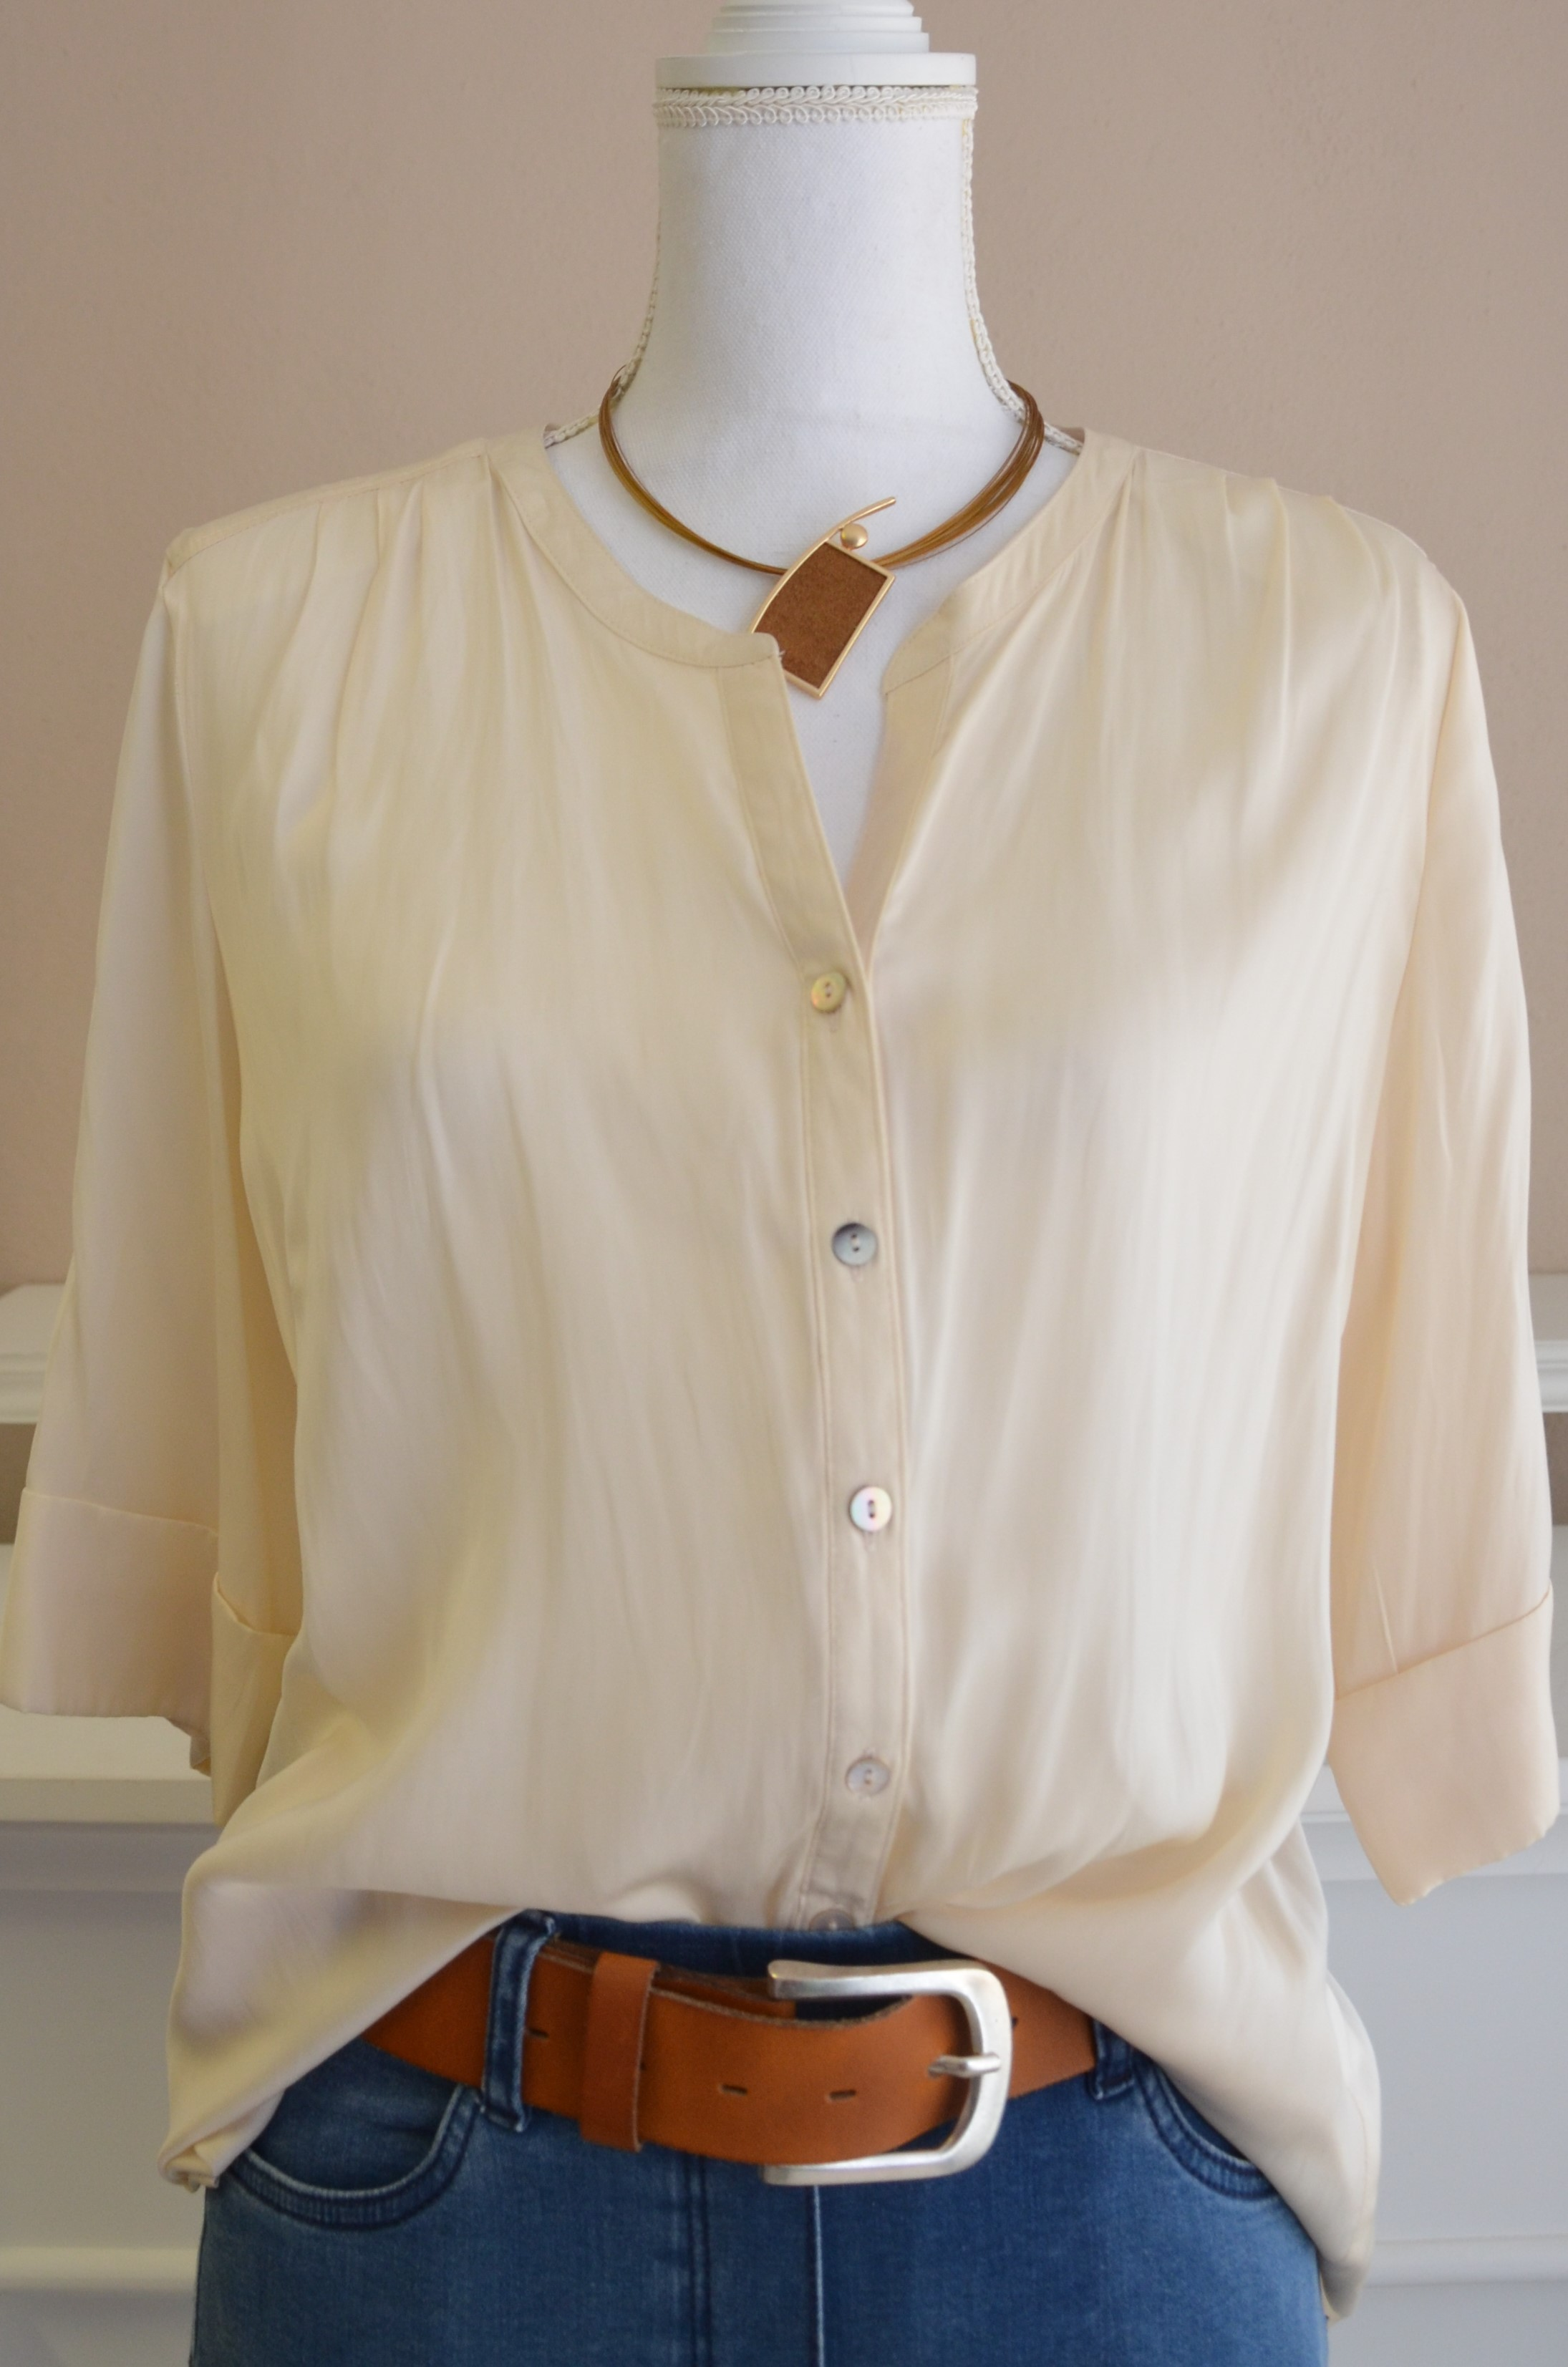 Bluse im sportiven Look